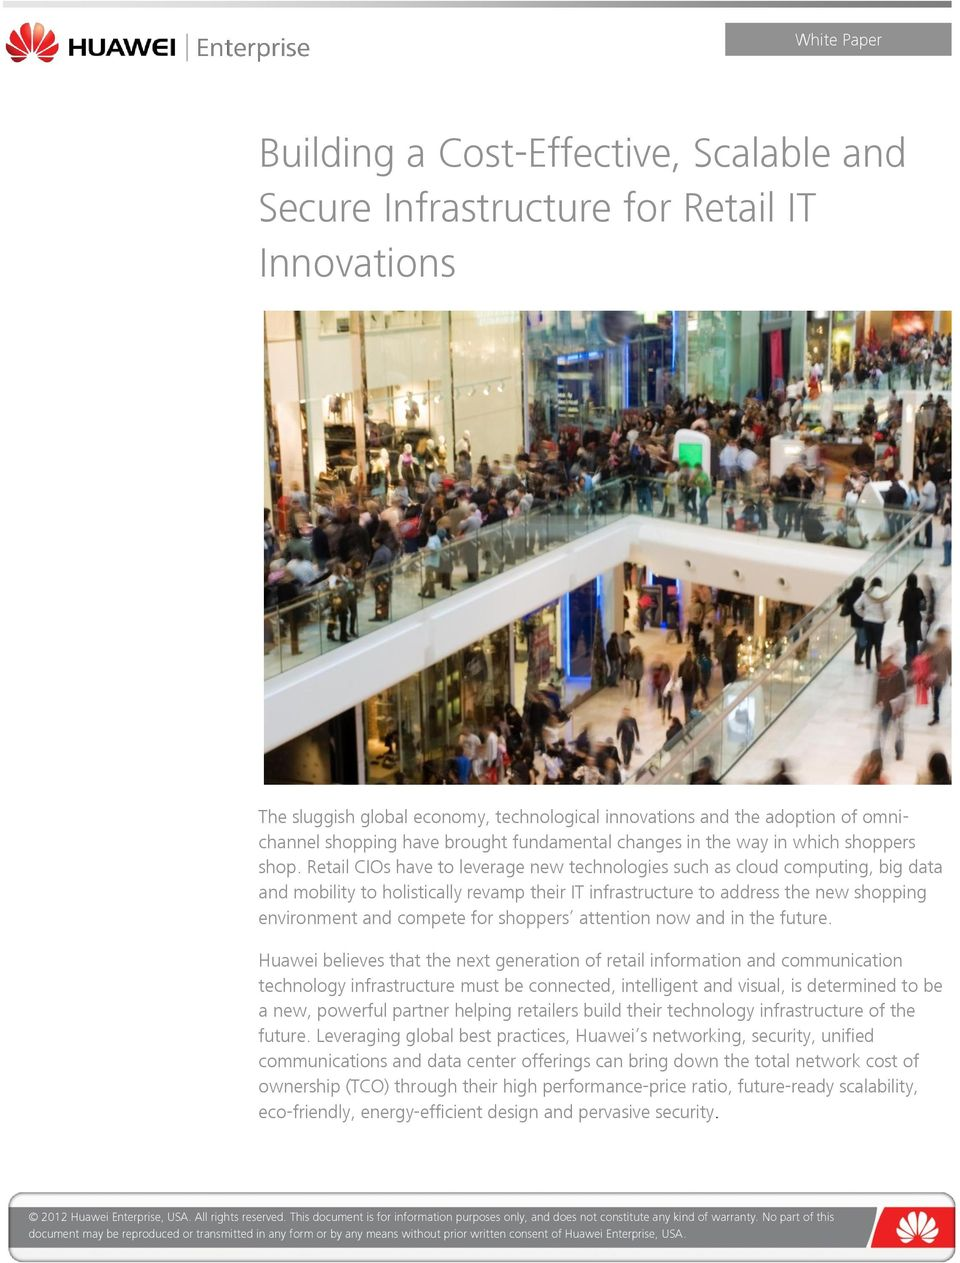 Retail CIOs have to leverage new technologies such as cloud computing, big data and mobility to holistically revamp their IT infrastructure to address the new shopping environment and compete for